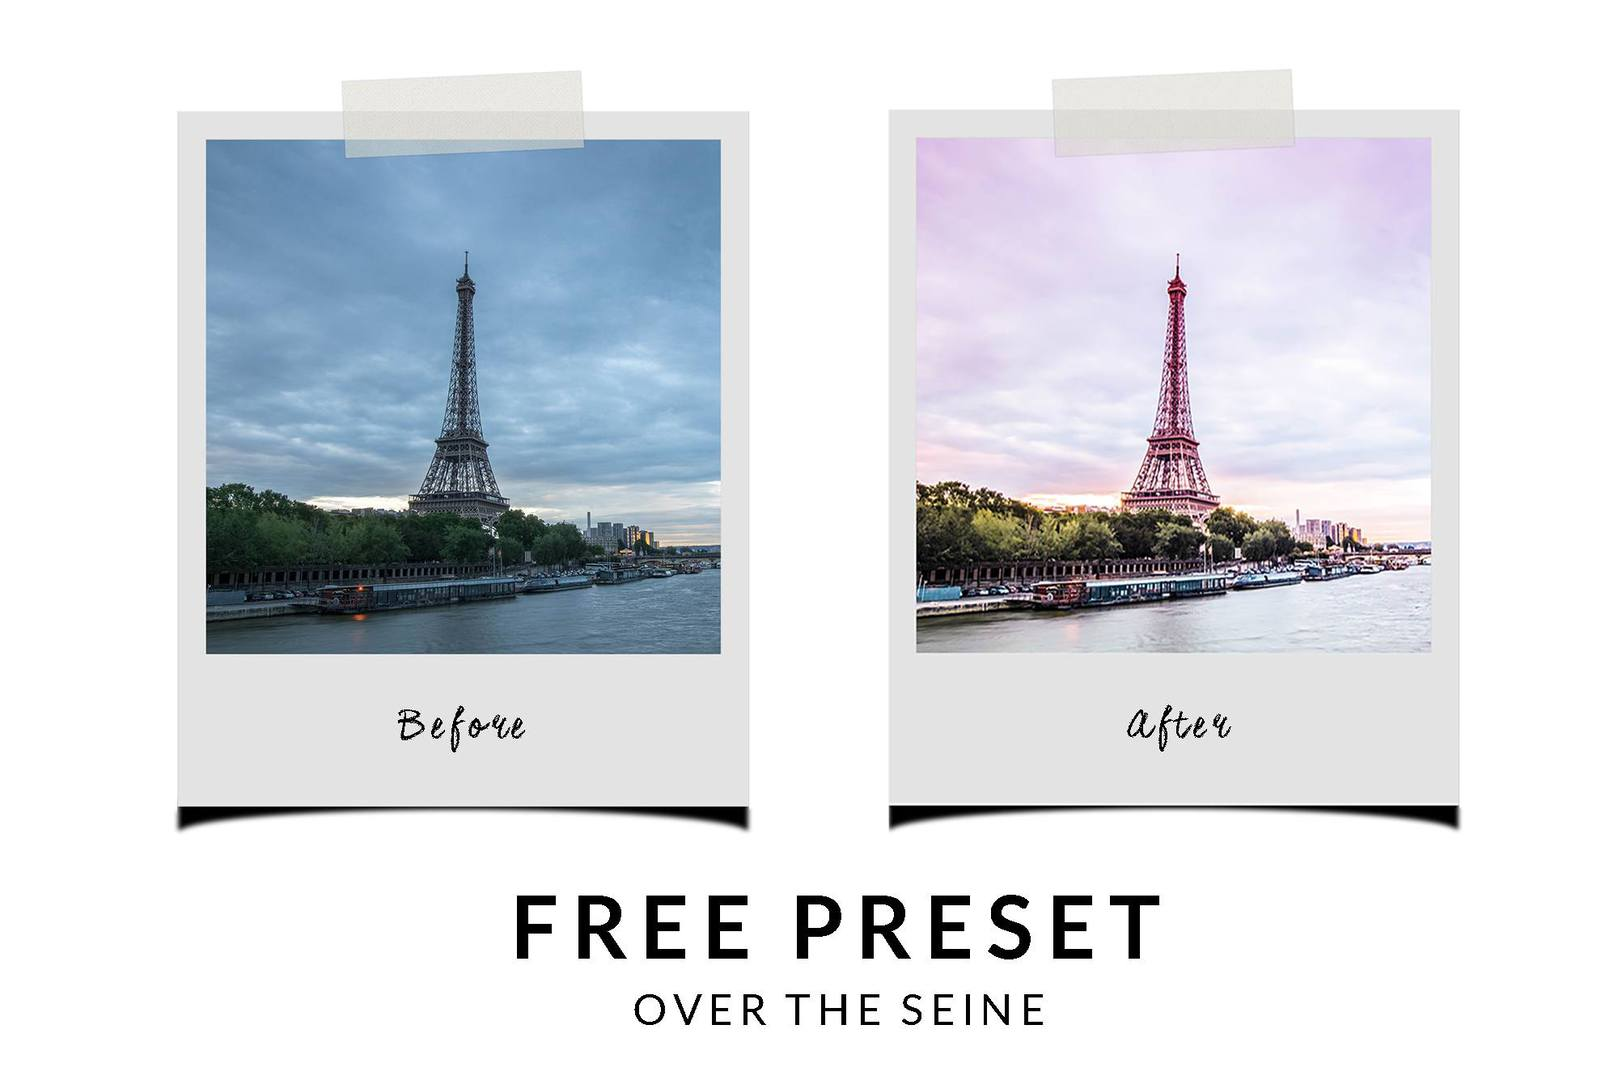 free-lightroom-preset-over-the-seine-cover